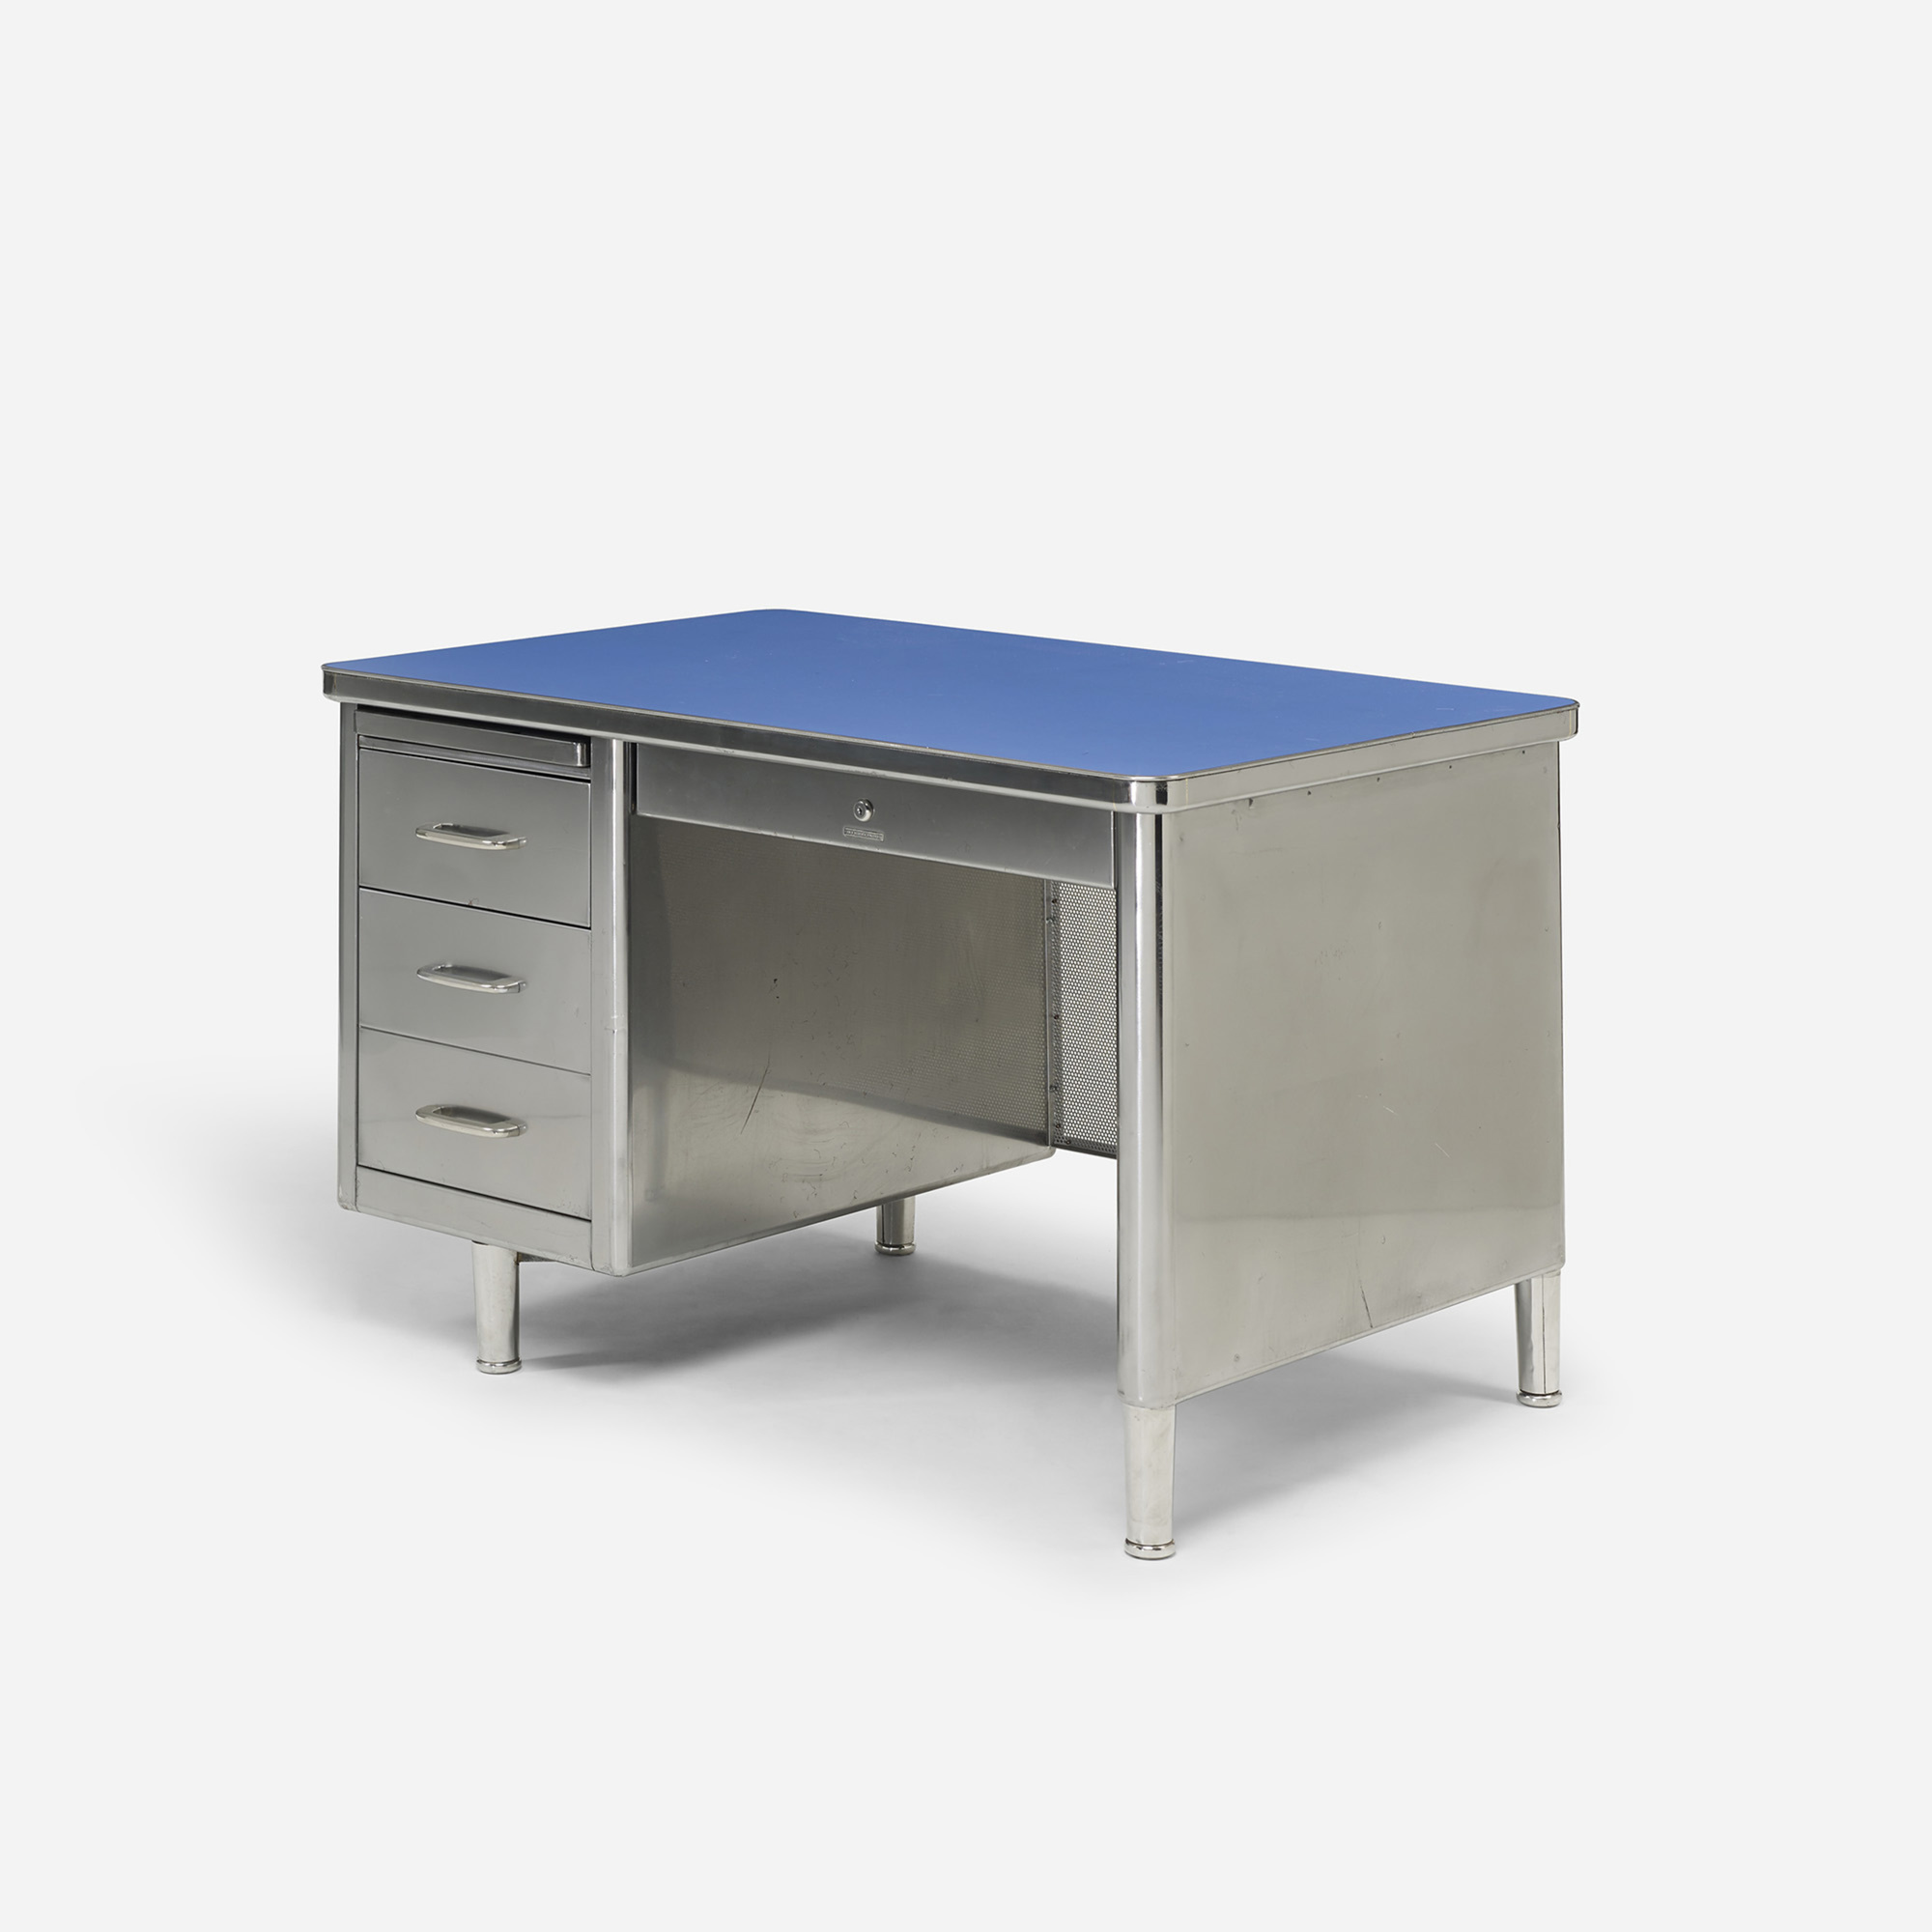 741: Steelcase / desk (3 of 4)